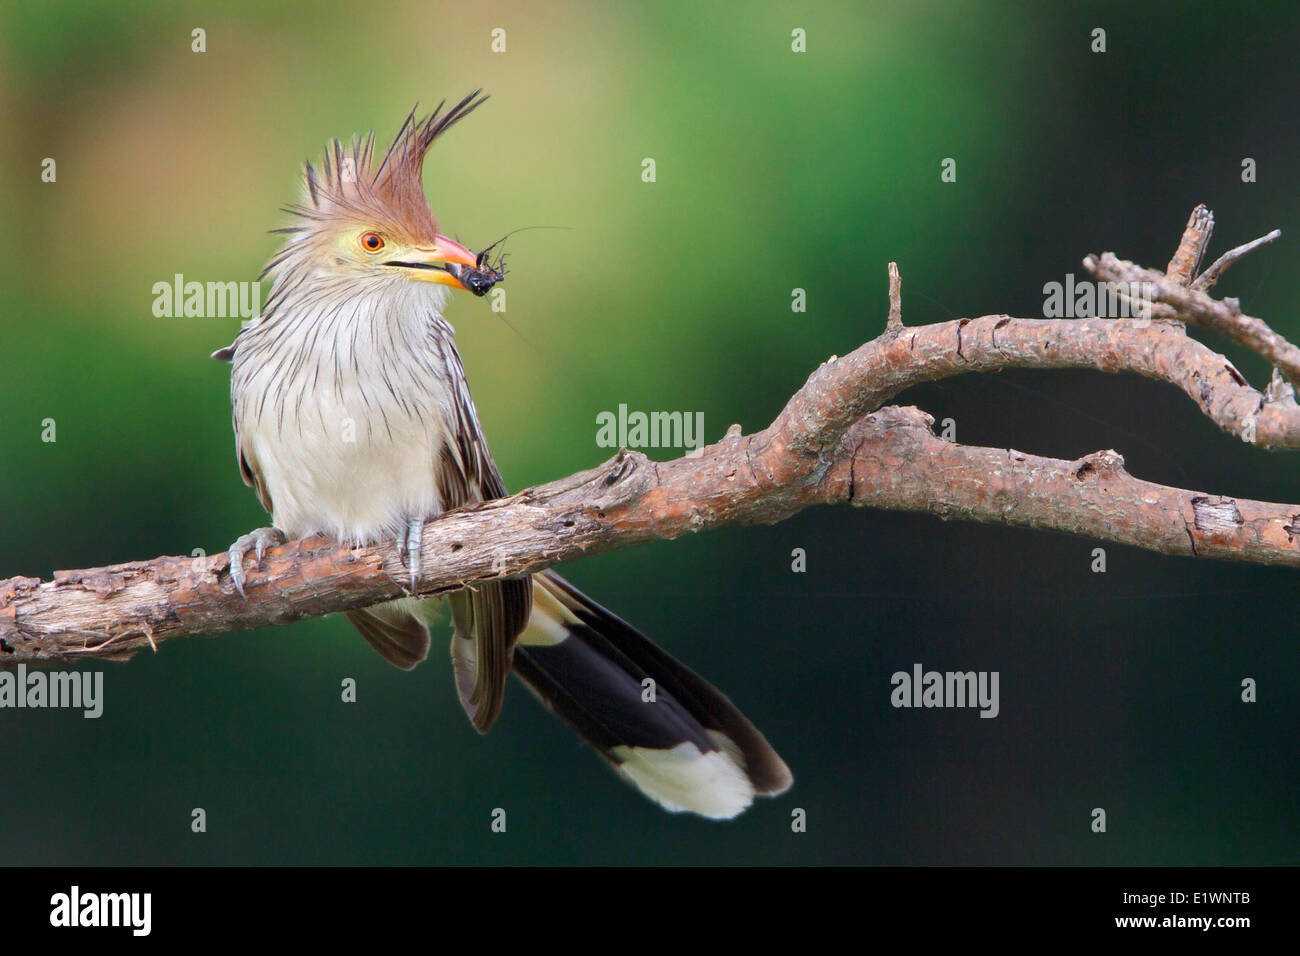 Guira Cuckoo (Guira guira) perched on a branch in Bolivia, South America. - Stock Image